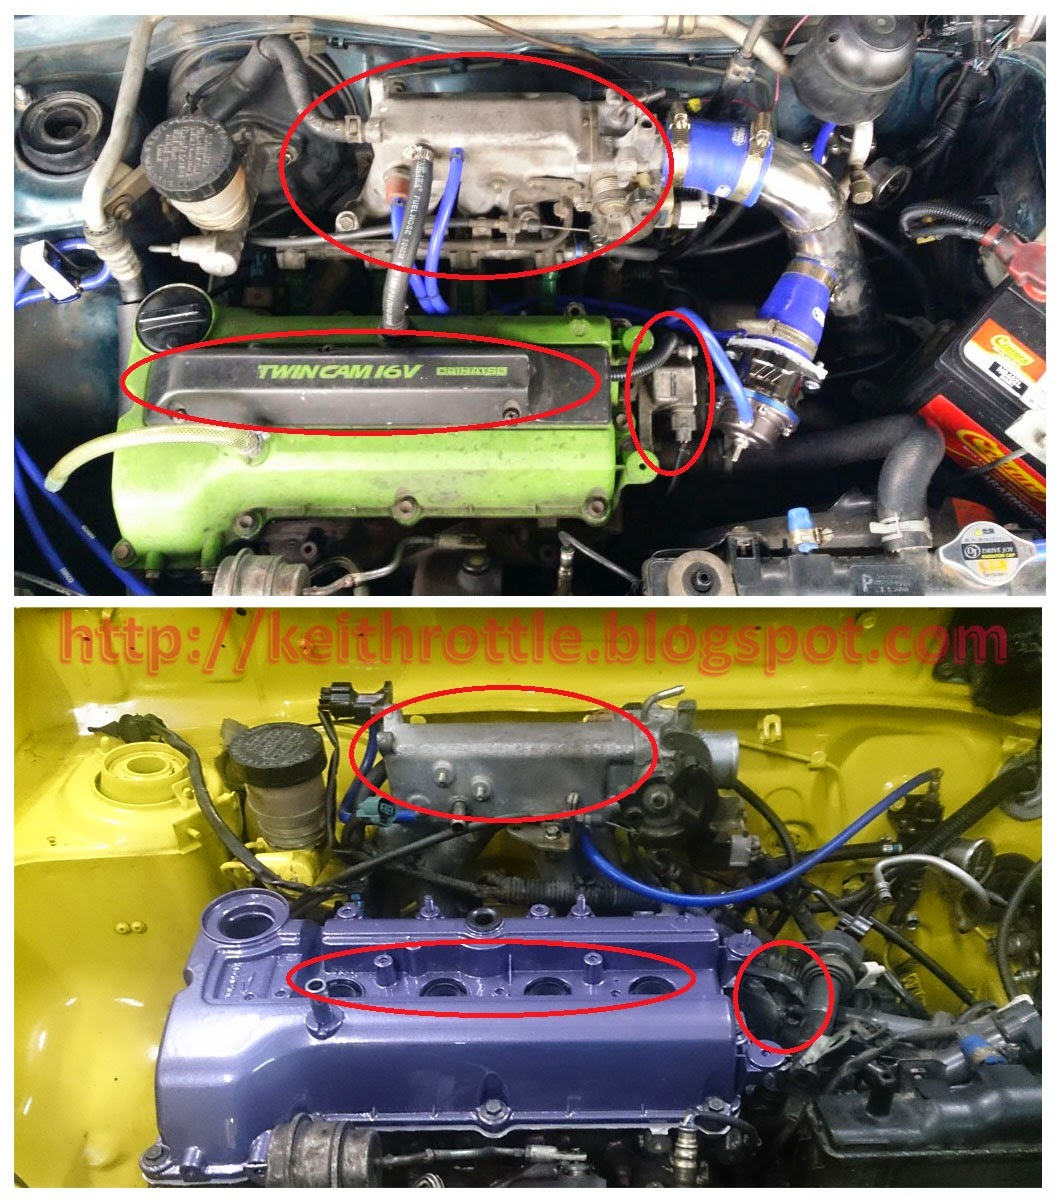 hight resolution of jb jl vs jb det daihatsu engine comparison